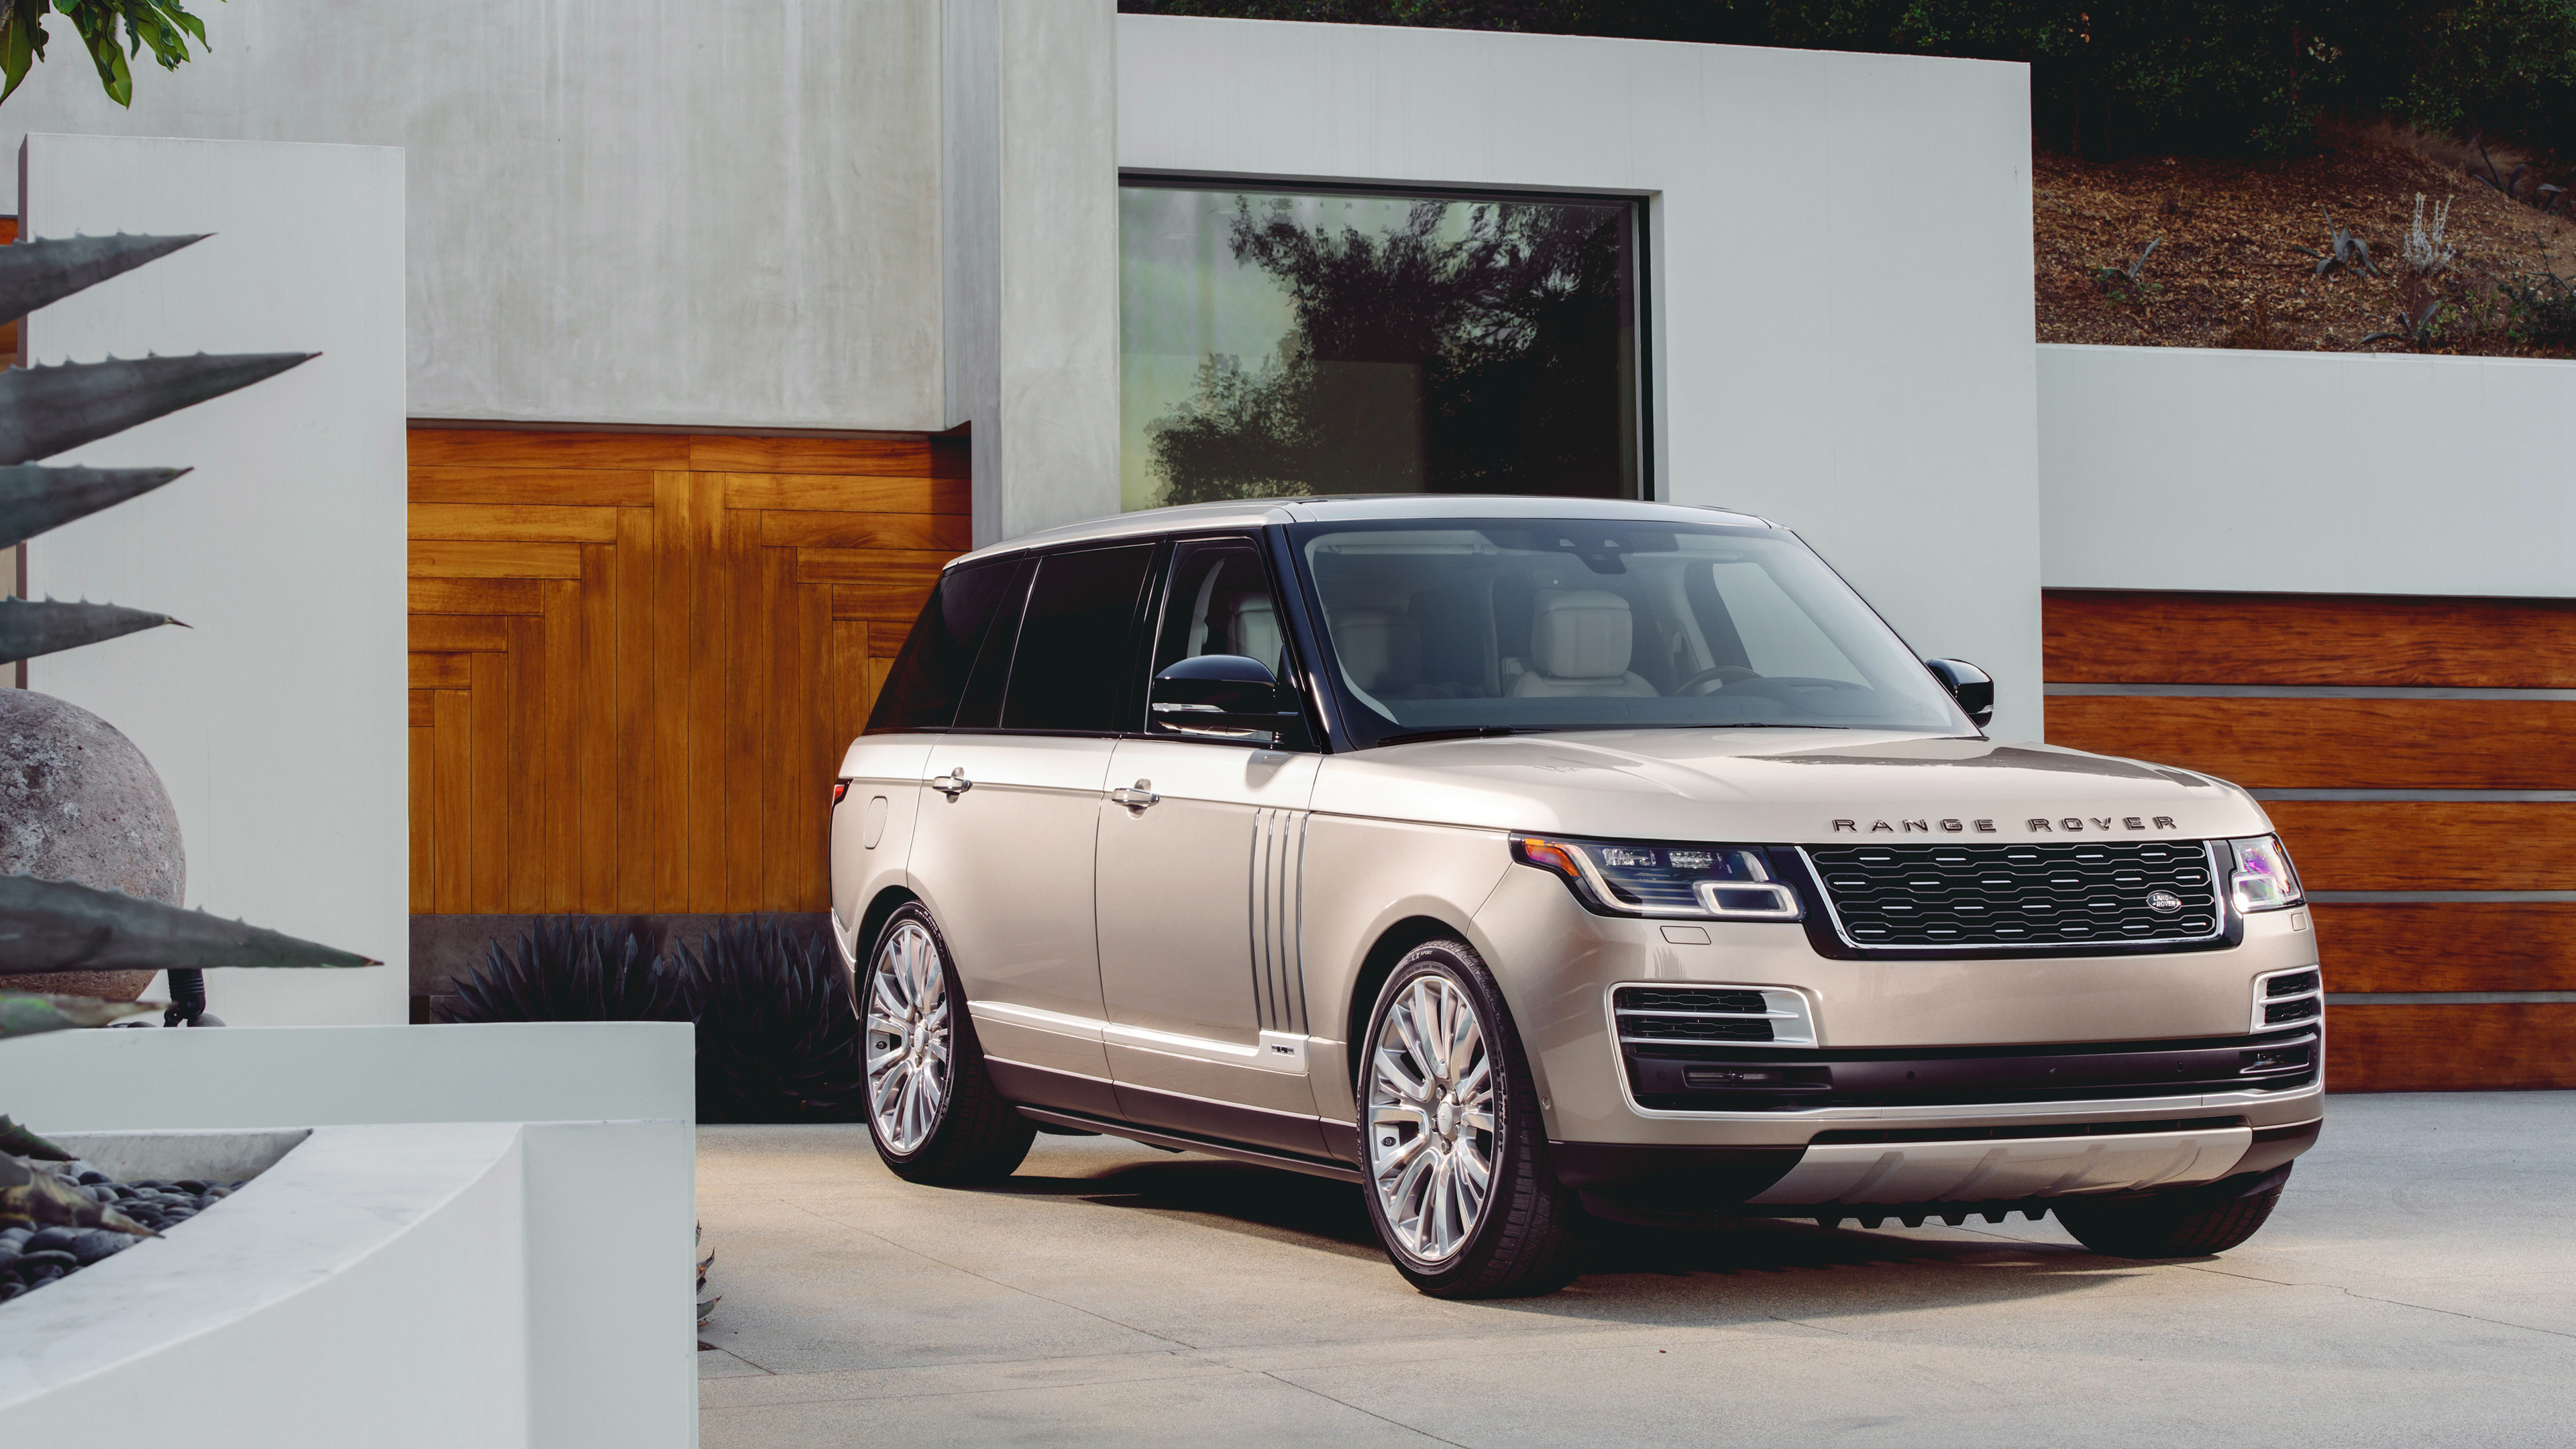 2018 range rover svautobiography 1539108170 - 2018 Range Rover SVAutobiography - range rover wallpapers, range rover svautobiography wallpapers, hd-wallpapers, 4k-wallpapers, 2018 cars wallpapers